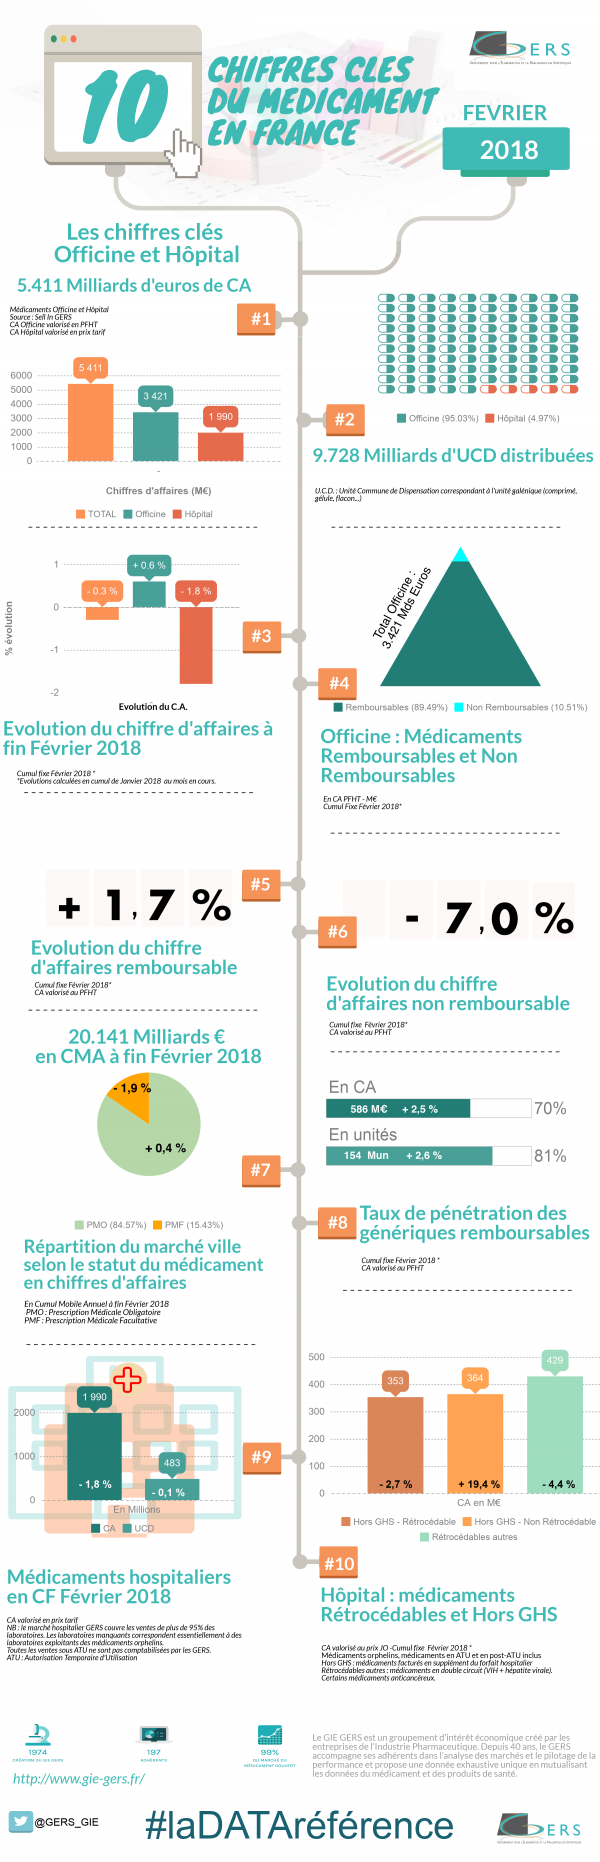 Chiffres cles GIE GERS fevrier 2018